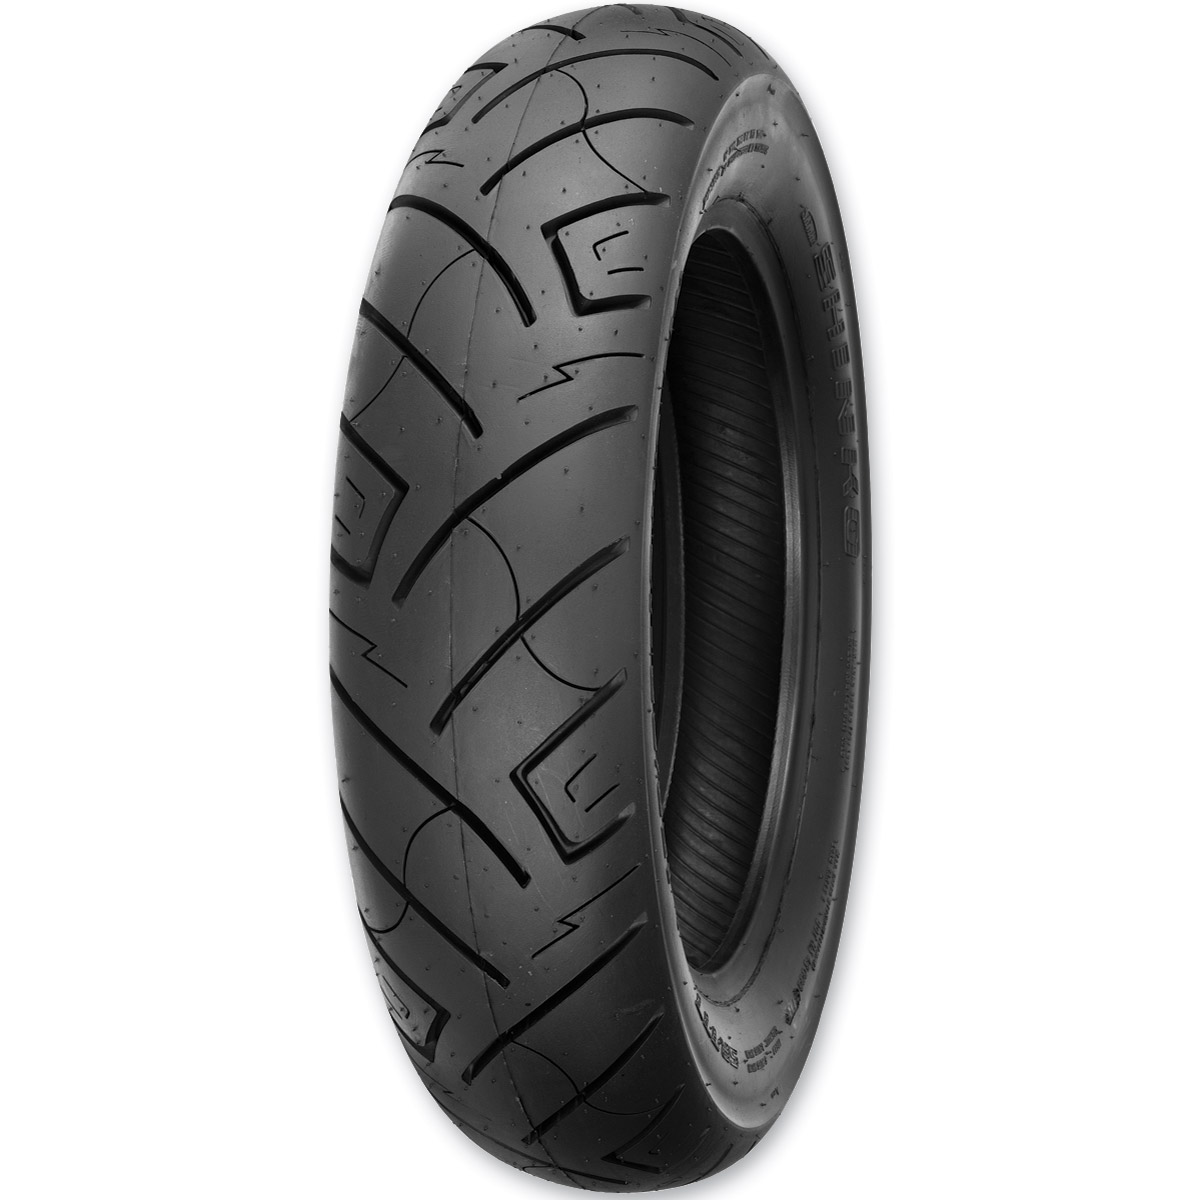 Shinko 777 160/80-15 Rear Tire